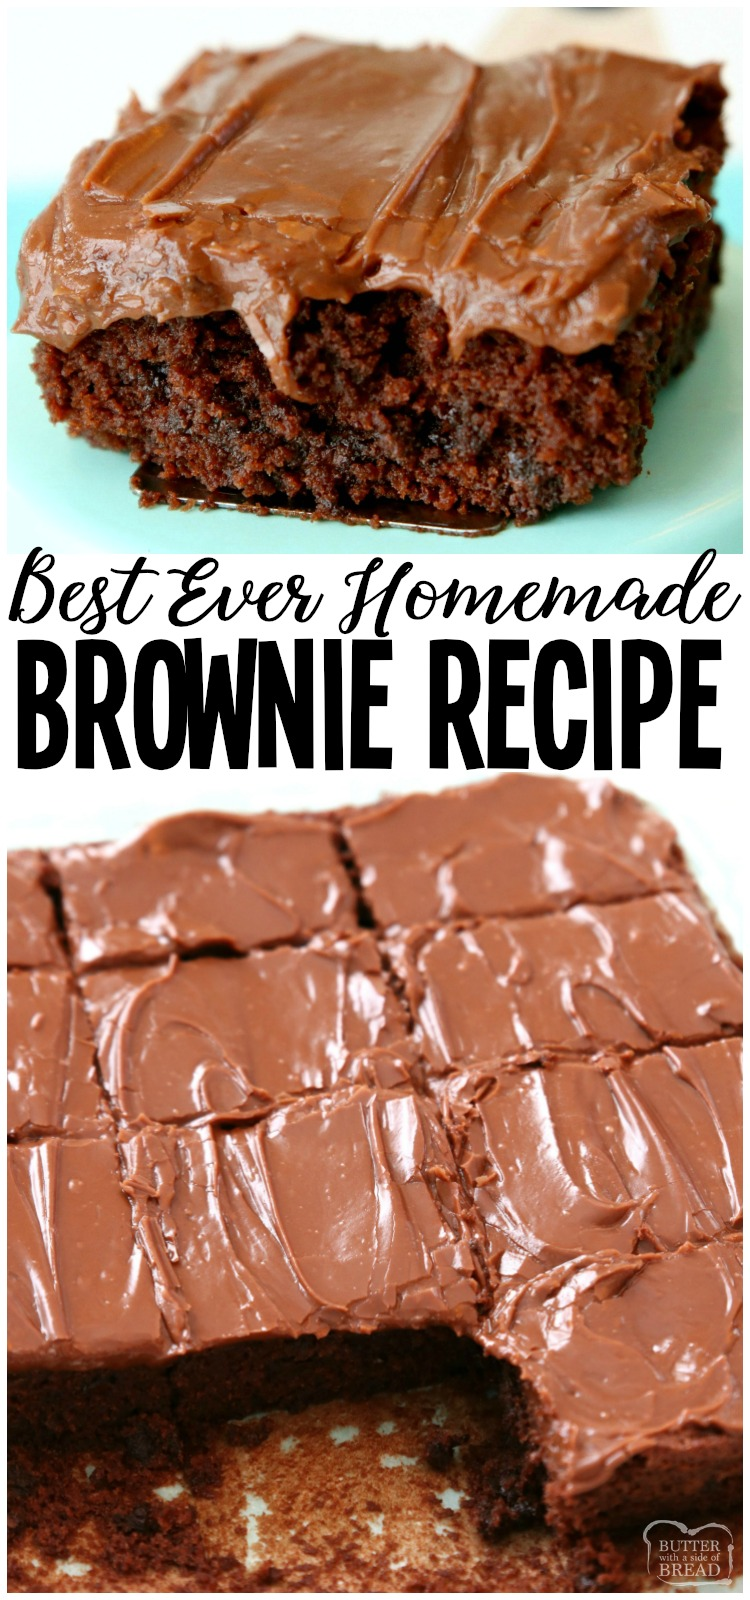 Best Classic Brownie Recipe made with basic ingredients and baked to fudgy, chocolate perfection! The easy chocolate frosting is amazing. These really are the BEST BROWNIES ever! #brownies #chocolate #baking #dessert #brownie #fudge #frosting #recipe from BUTTER WITH A SIDE OF BREAD